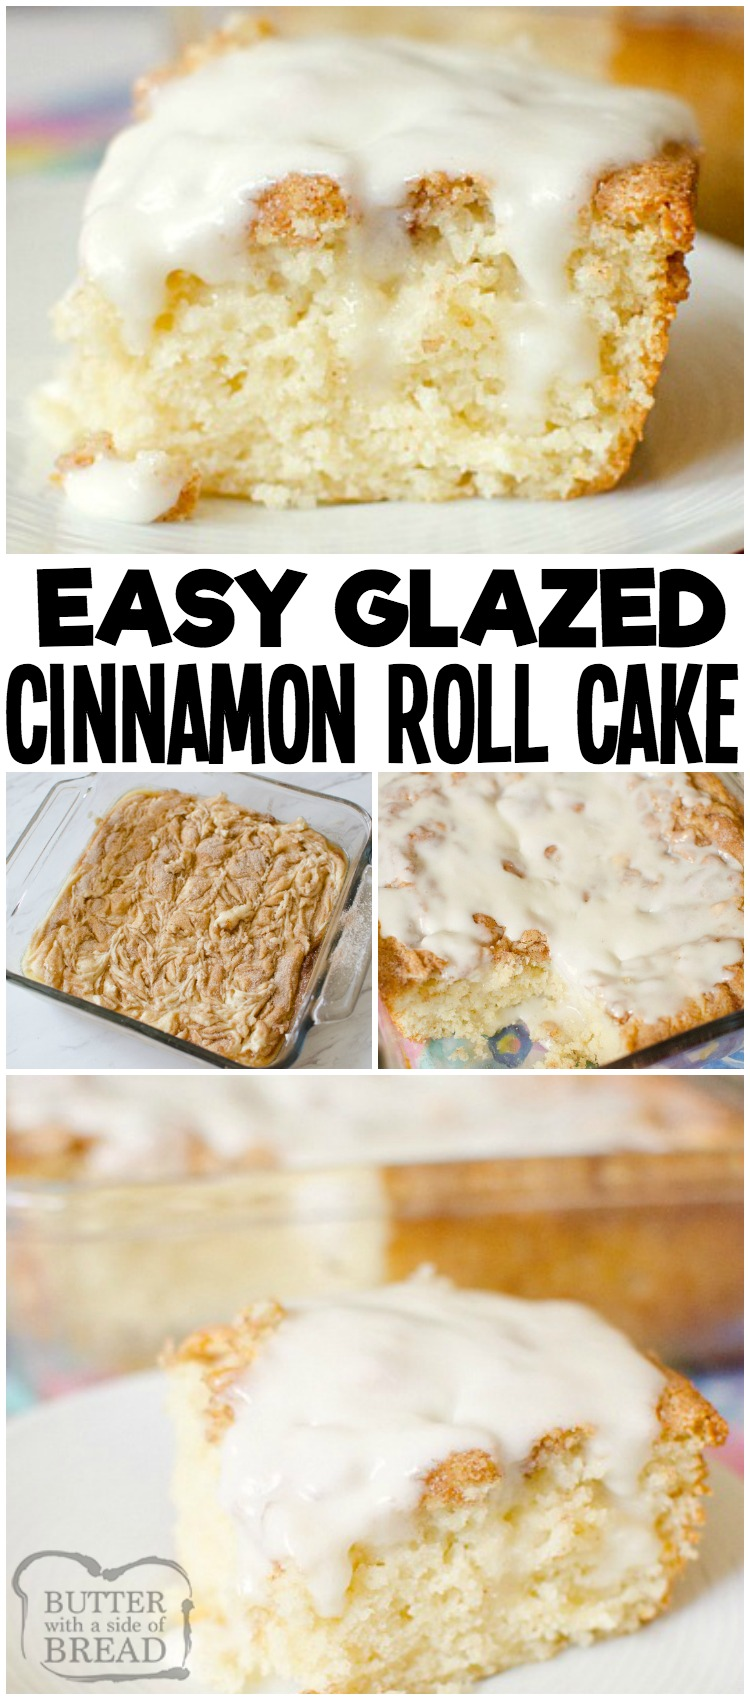 Cinnamon Roll Cake gives you all the classic cinnamon roll flavors with minimal work and time! Everyone loves the fluffy texture, cinnamon and sugar swirl top and the sweet vanilla glaze in this easy cinnamon roll cake recipe. #breakfast #brunch #cake #cinnamon #cinnamonroll #baking #dessert #food from BUTTER WITH A SIDE OF BREAD